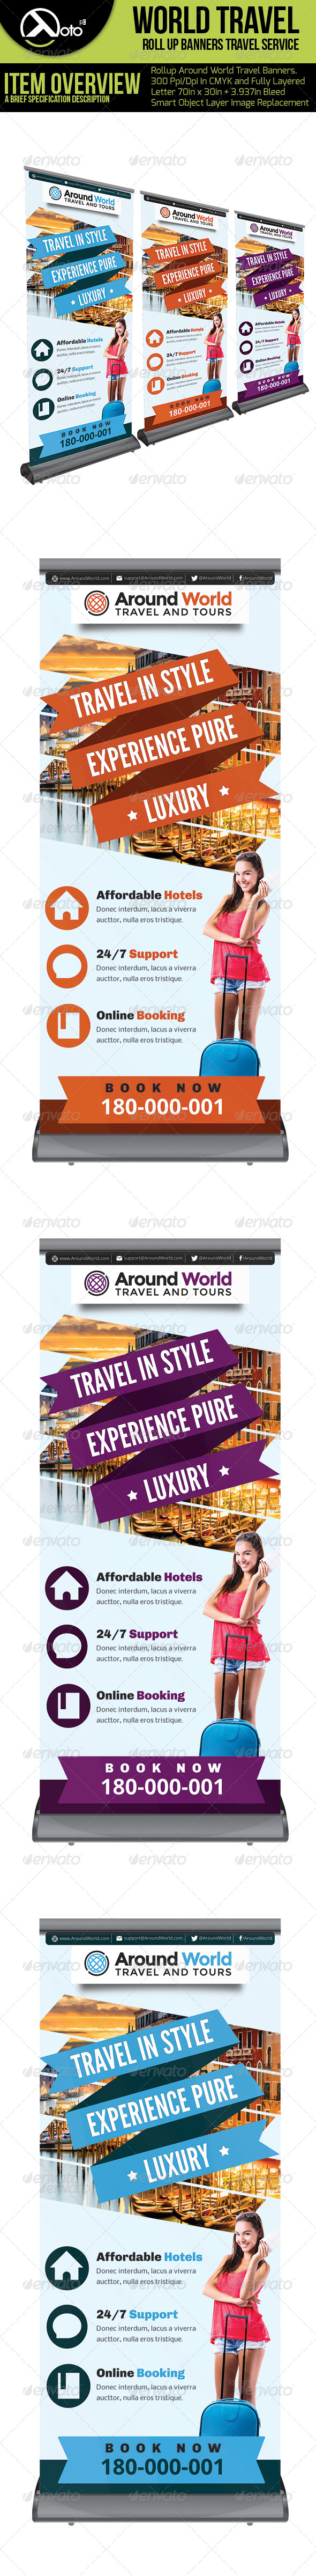 Around World Travel Roll up Banner - Signage Print Templates